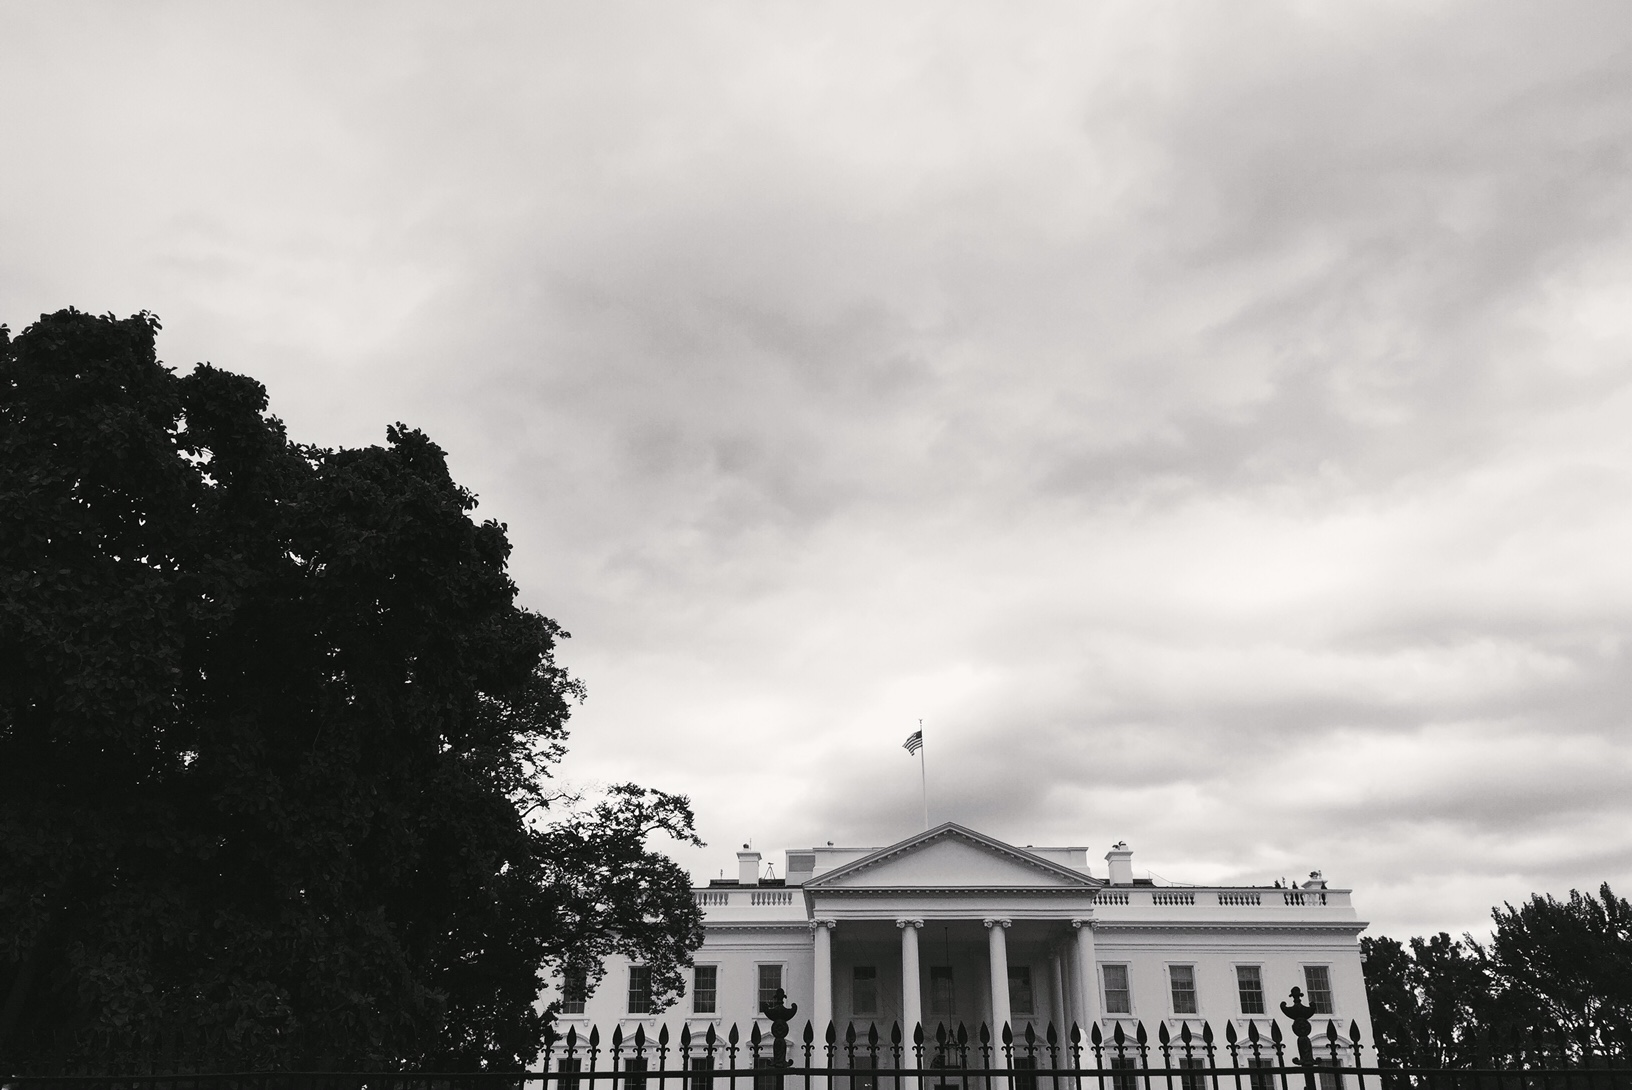 We walked past the White House several times a day -our hotel was that close.